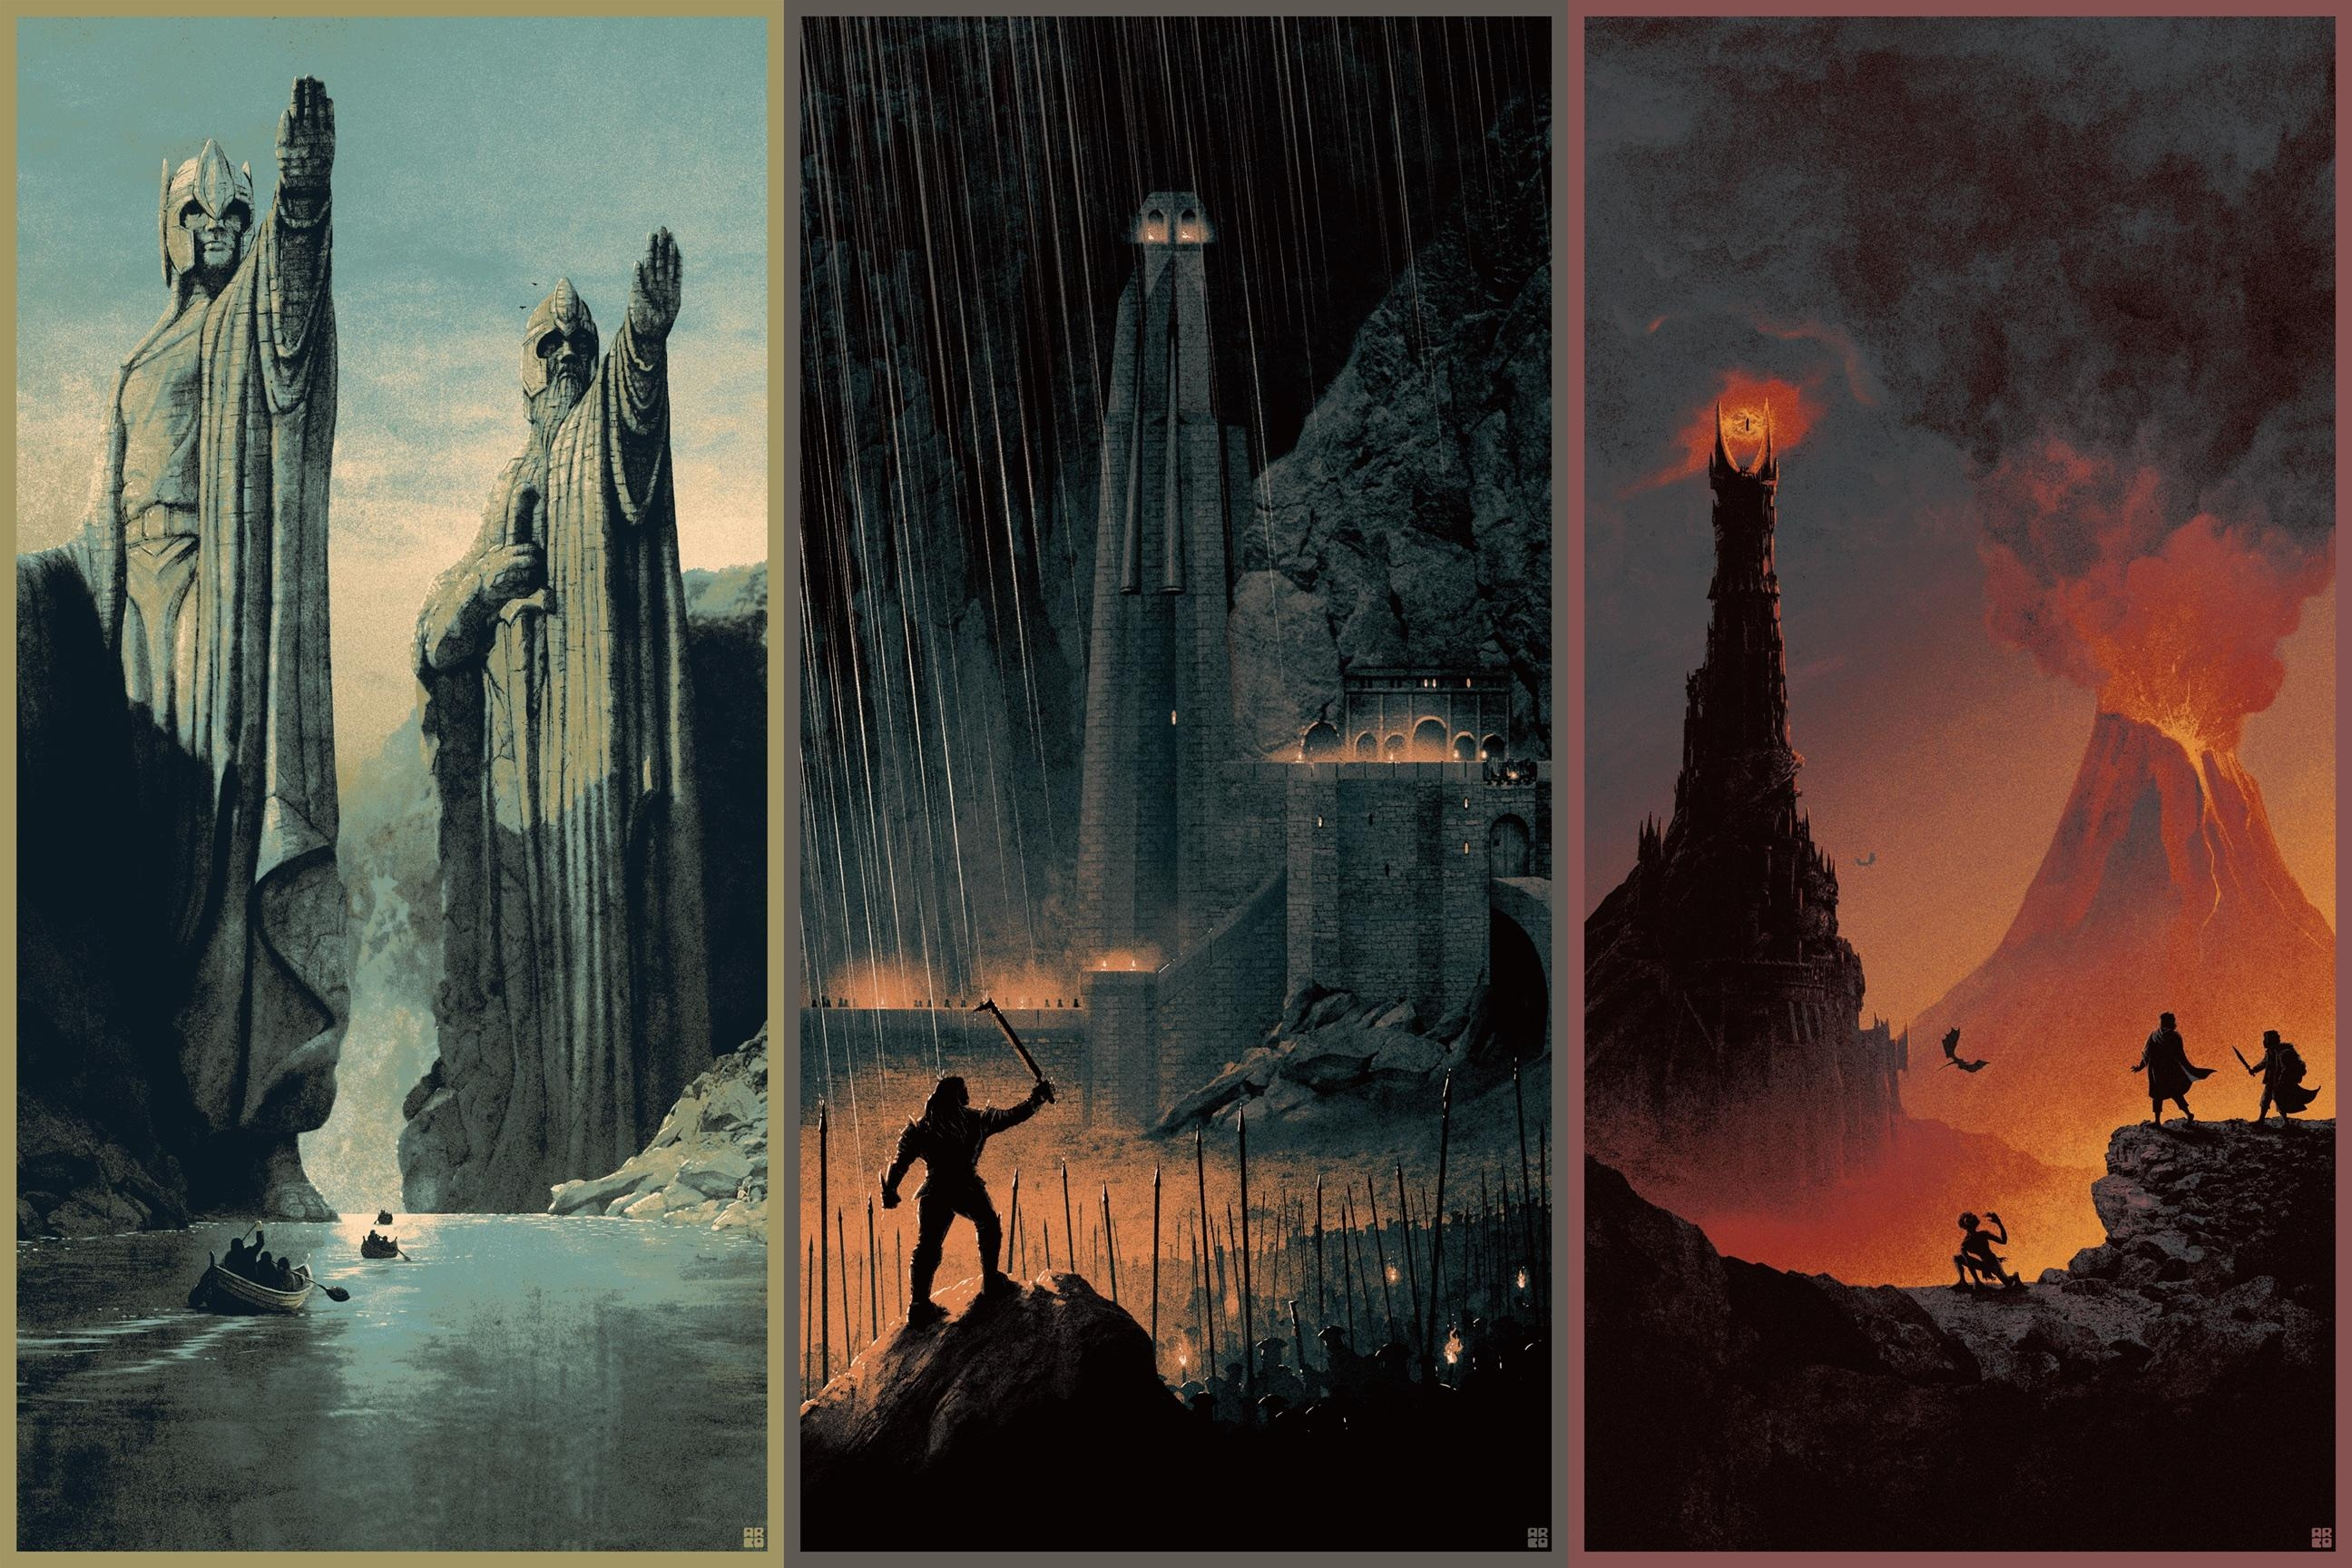 Matt Ferguson's Lord Of The Rings Posters Are Amazing | Collider For Art Prints To Hang On Your Wall (View 13 of 20)